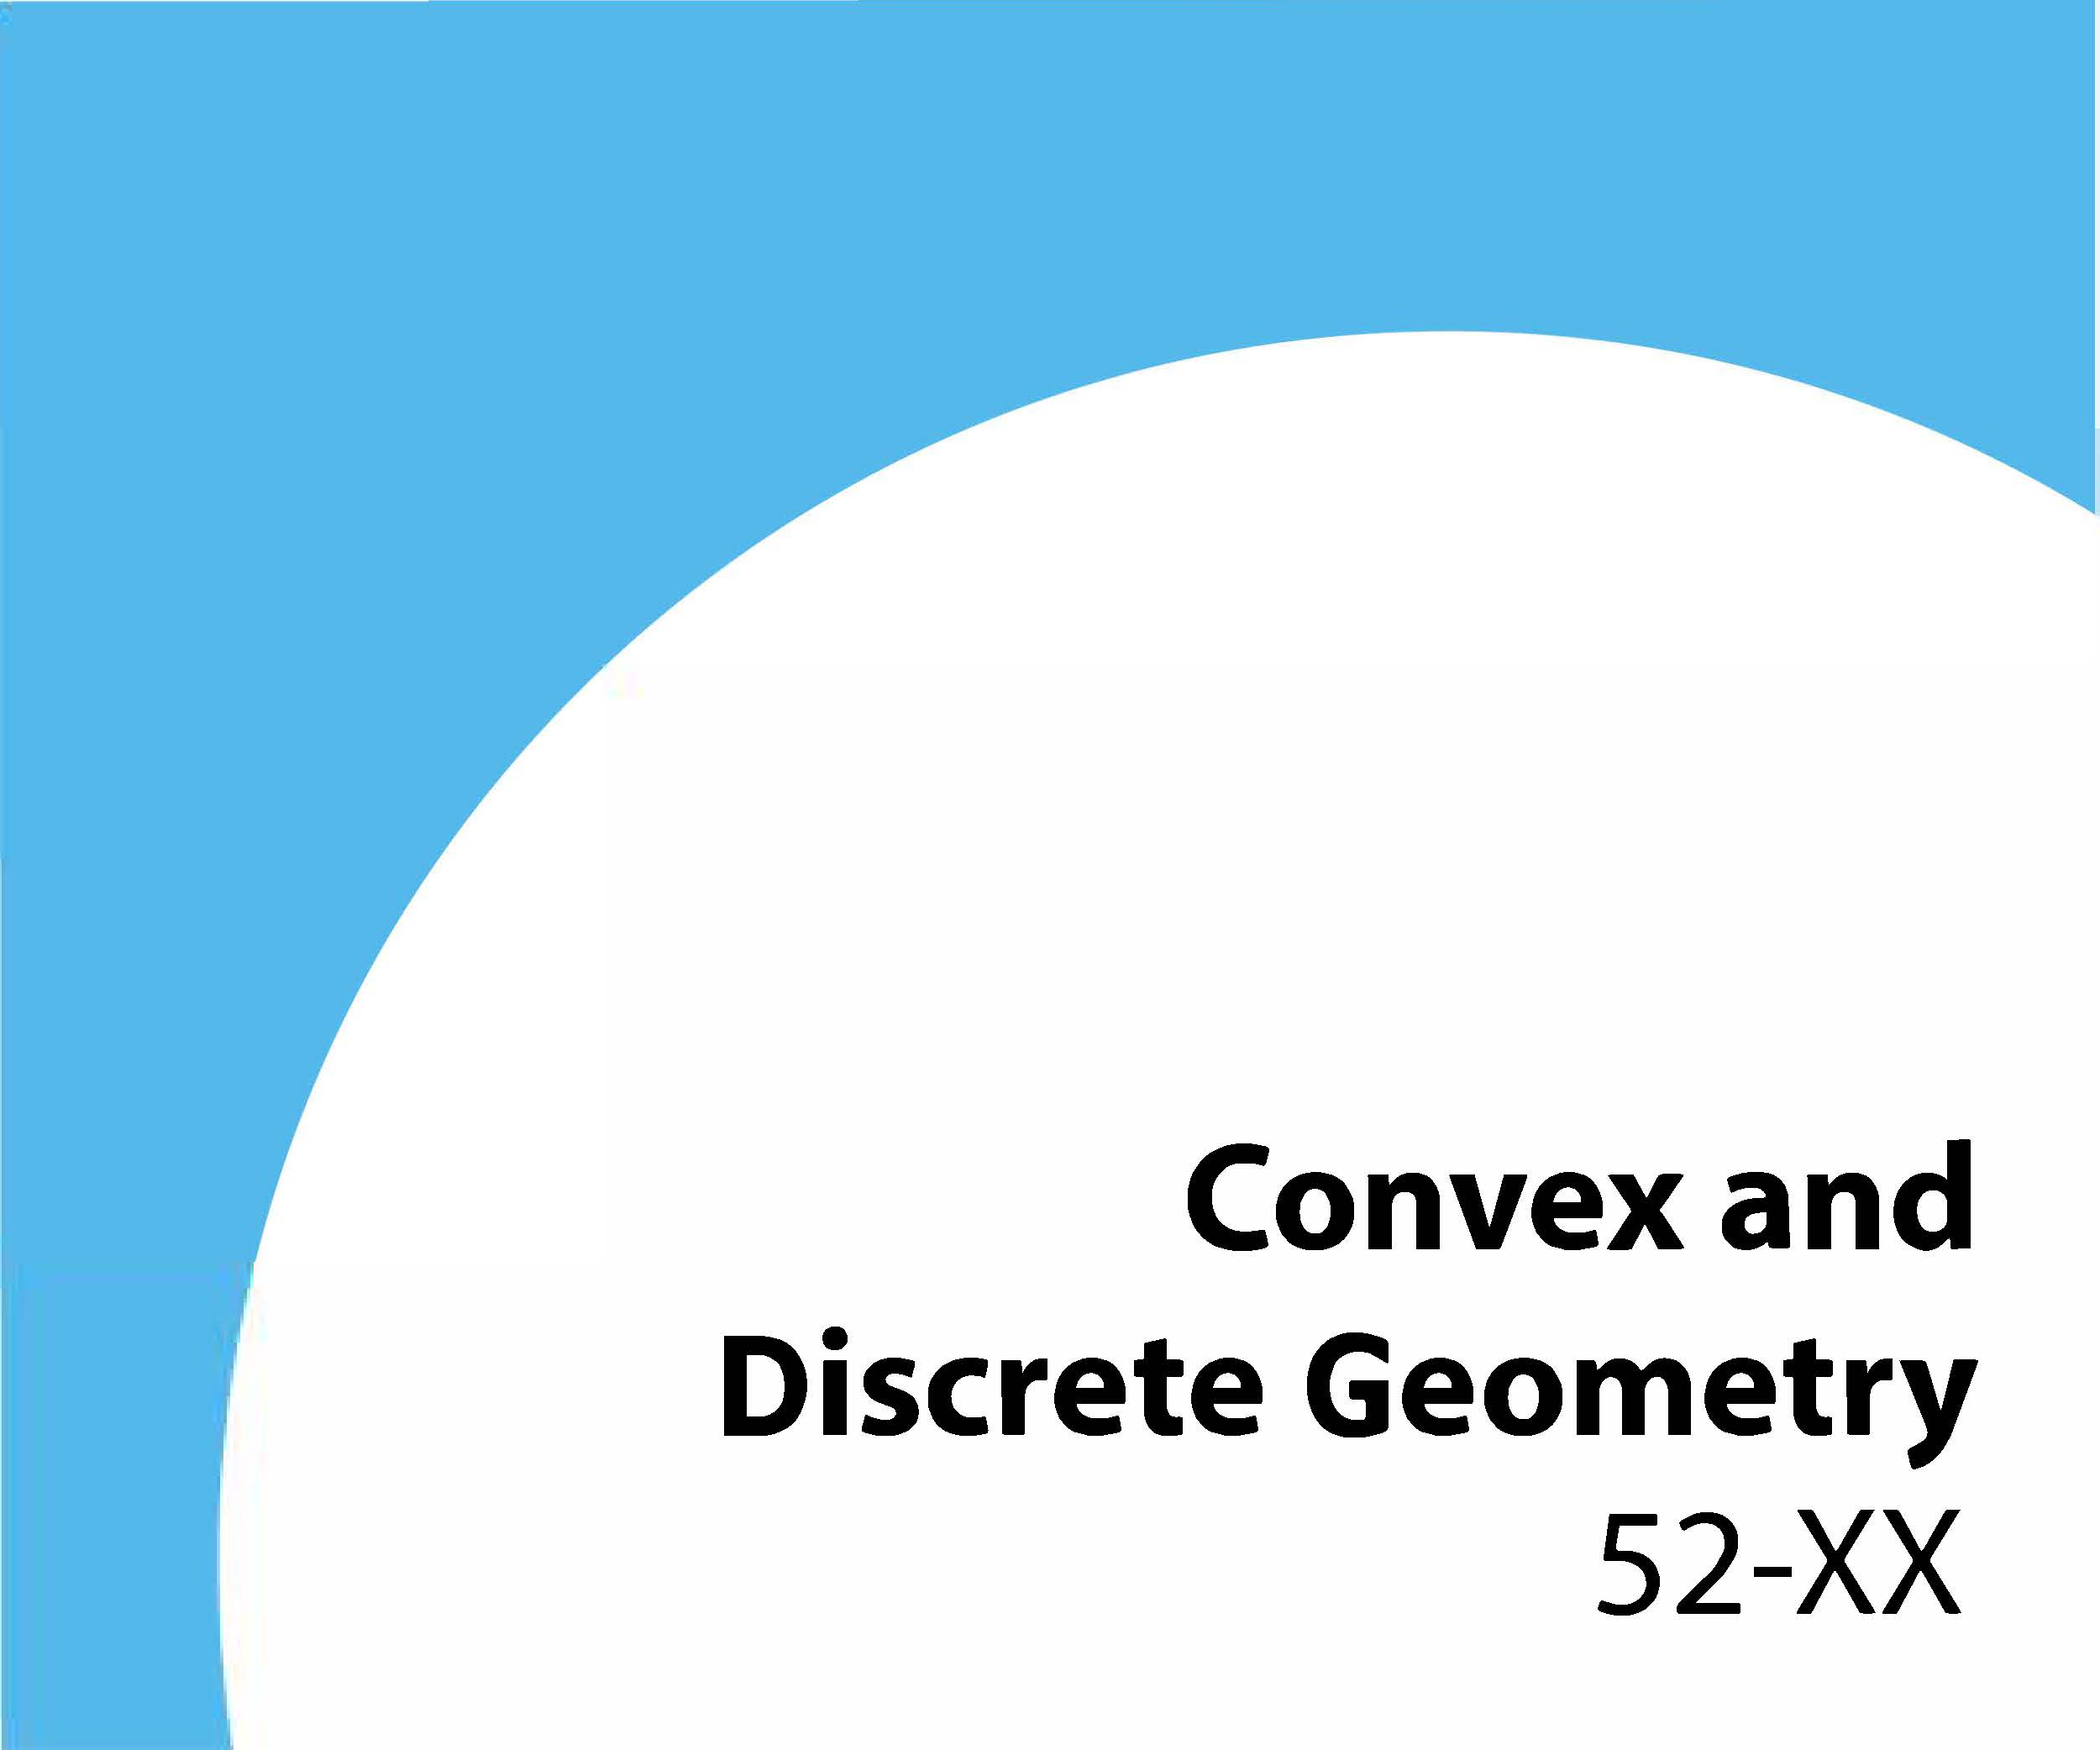 52-xx Convex and discrete geometry